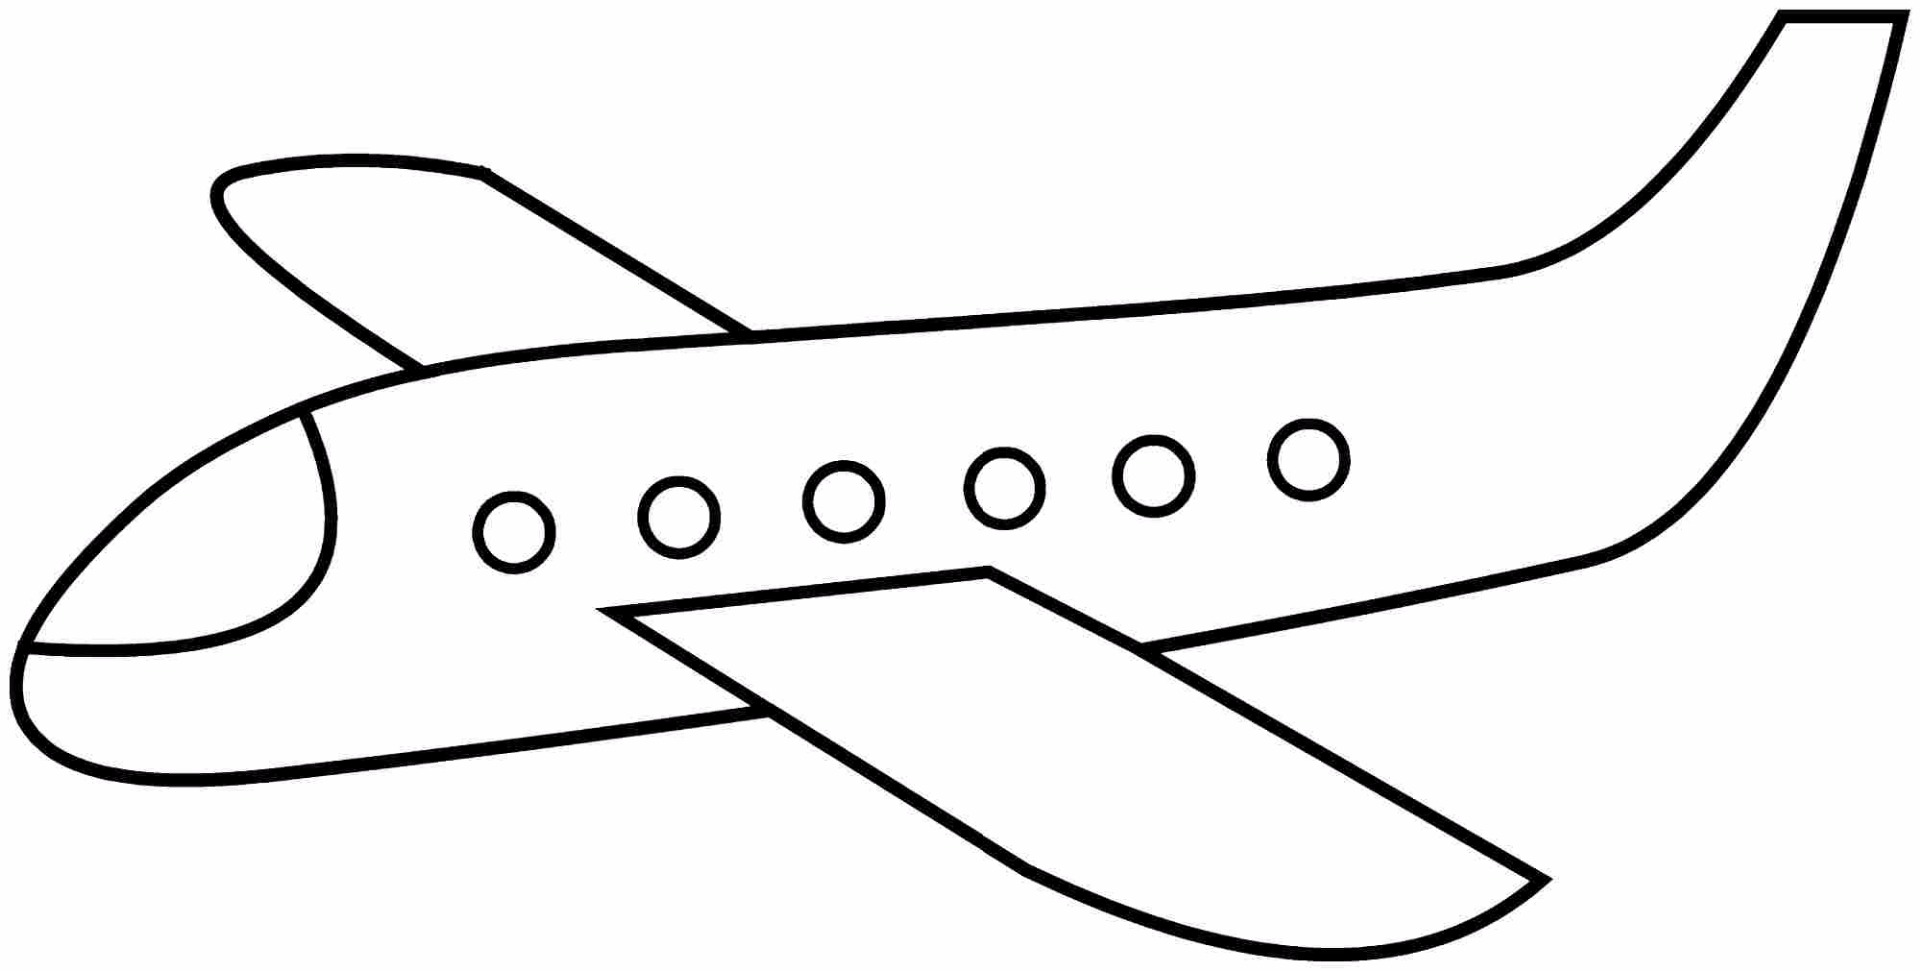 Coloring pages coloring pages for boys lego star wars coloring - Plane Coloring Pages